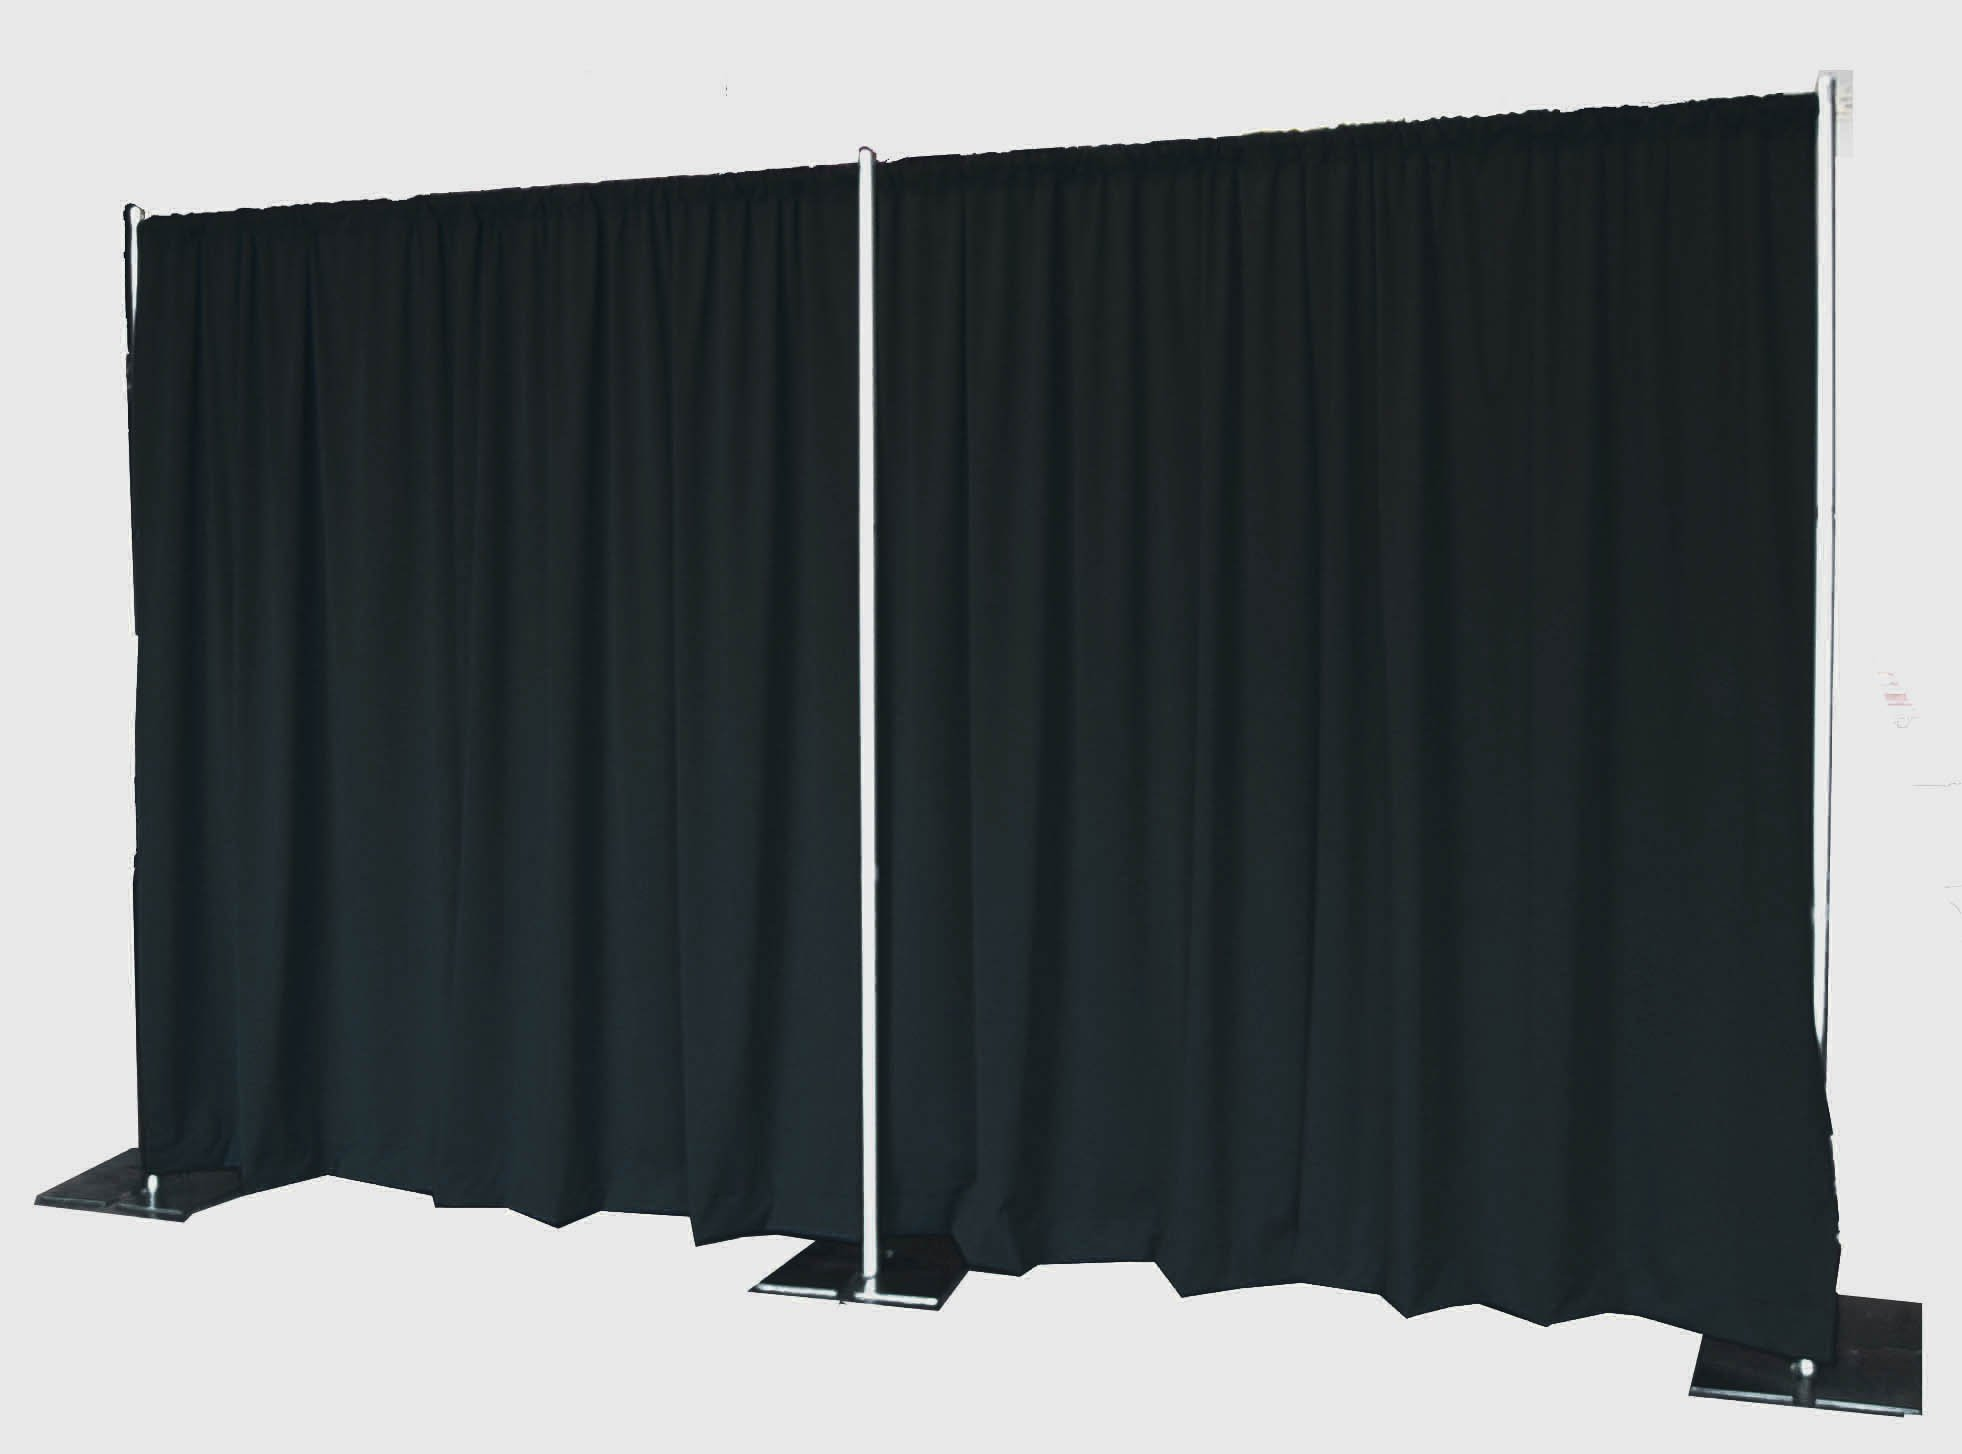 Pipe and Drape Backdrop 8ft x 20ft (Black) by OnlineEEI